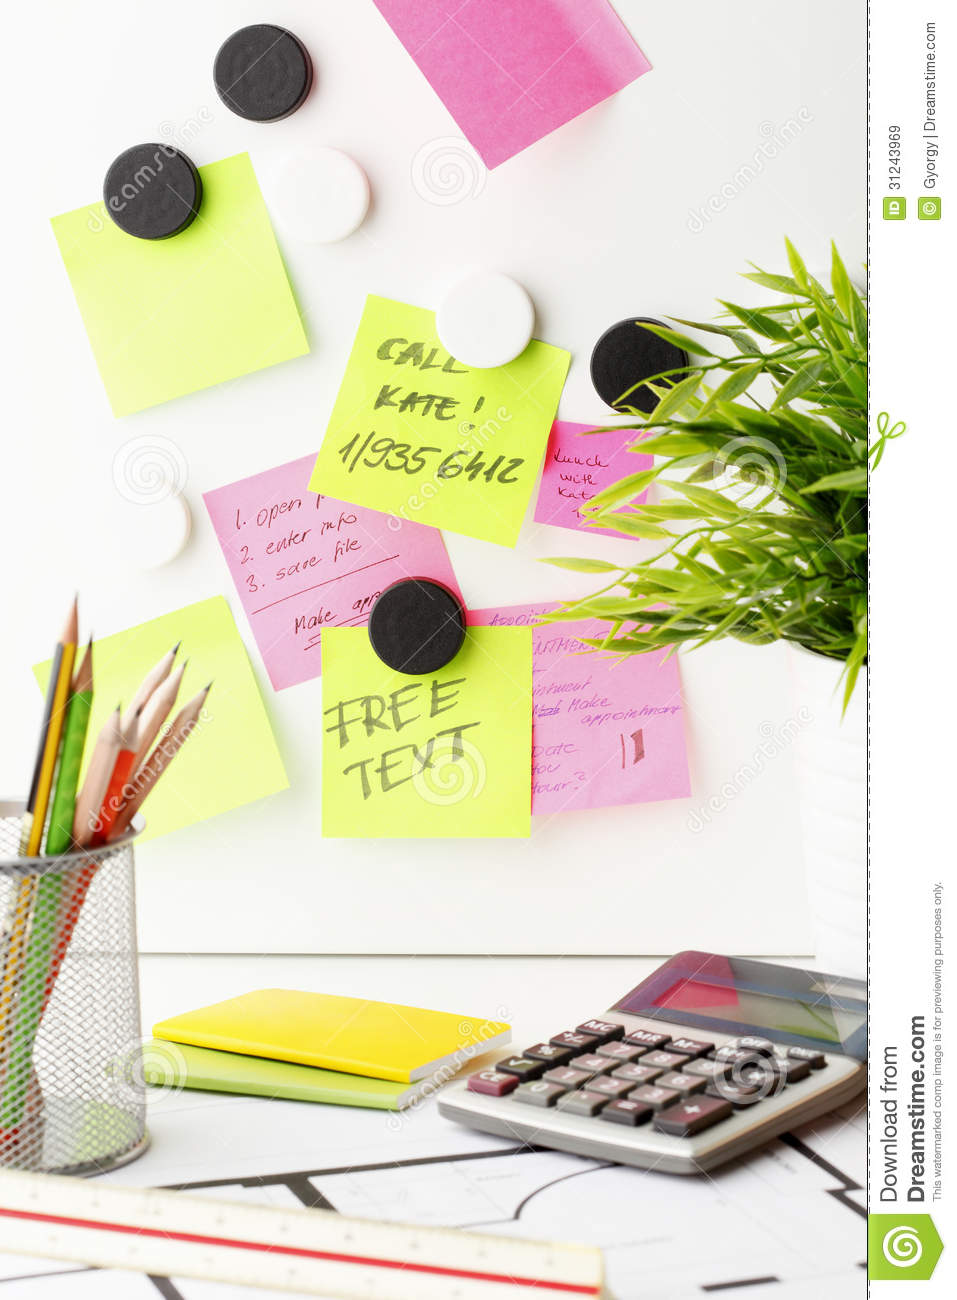 Desk with Post It notes stock image Image of list